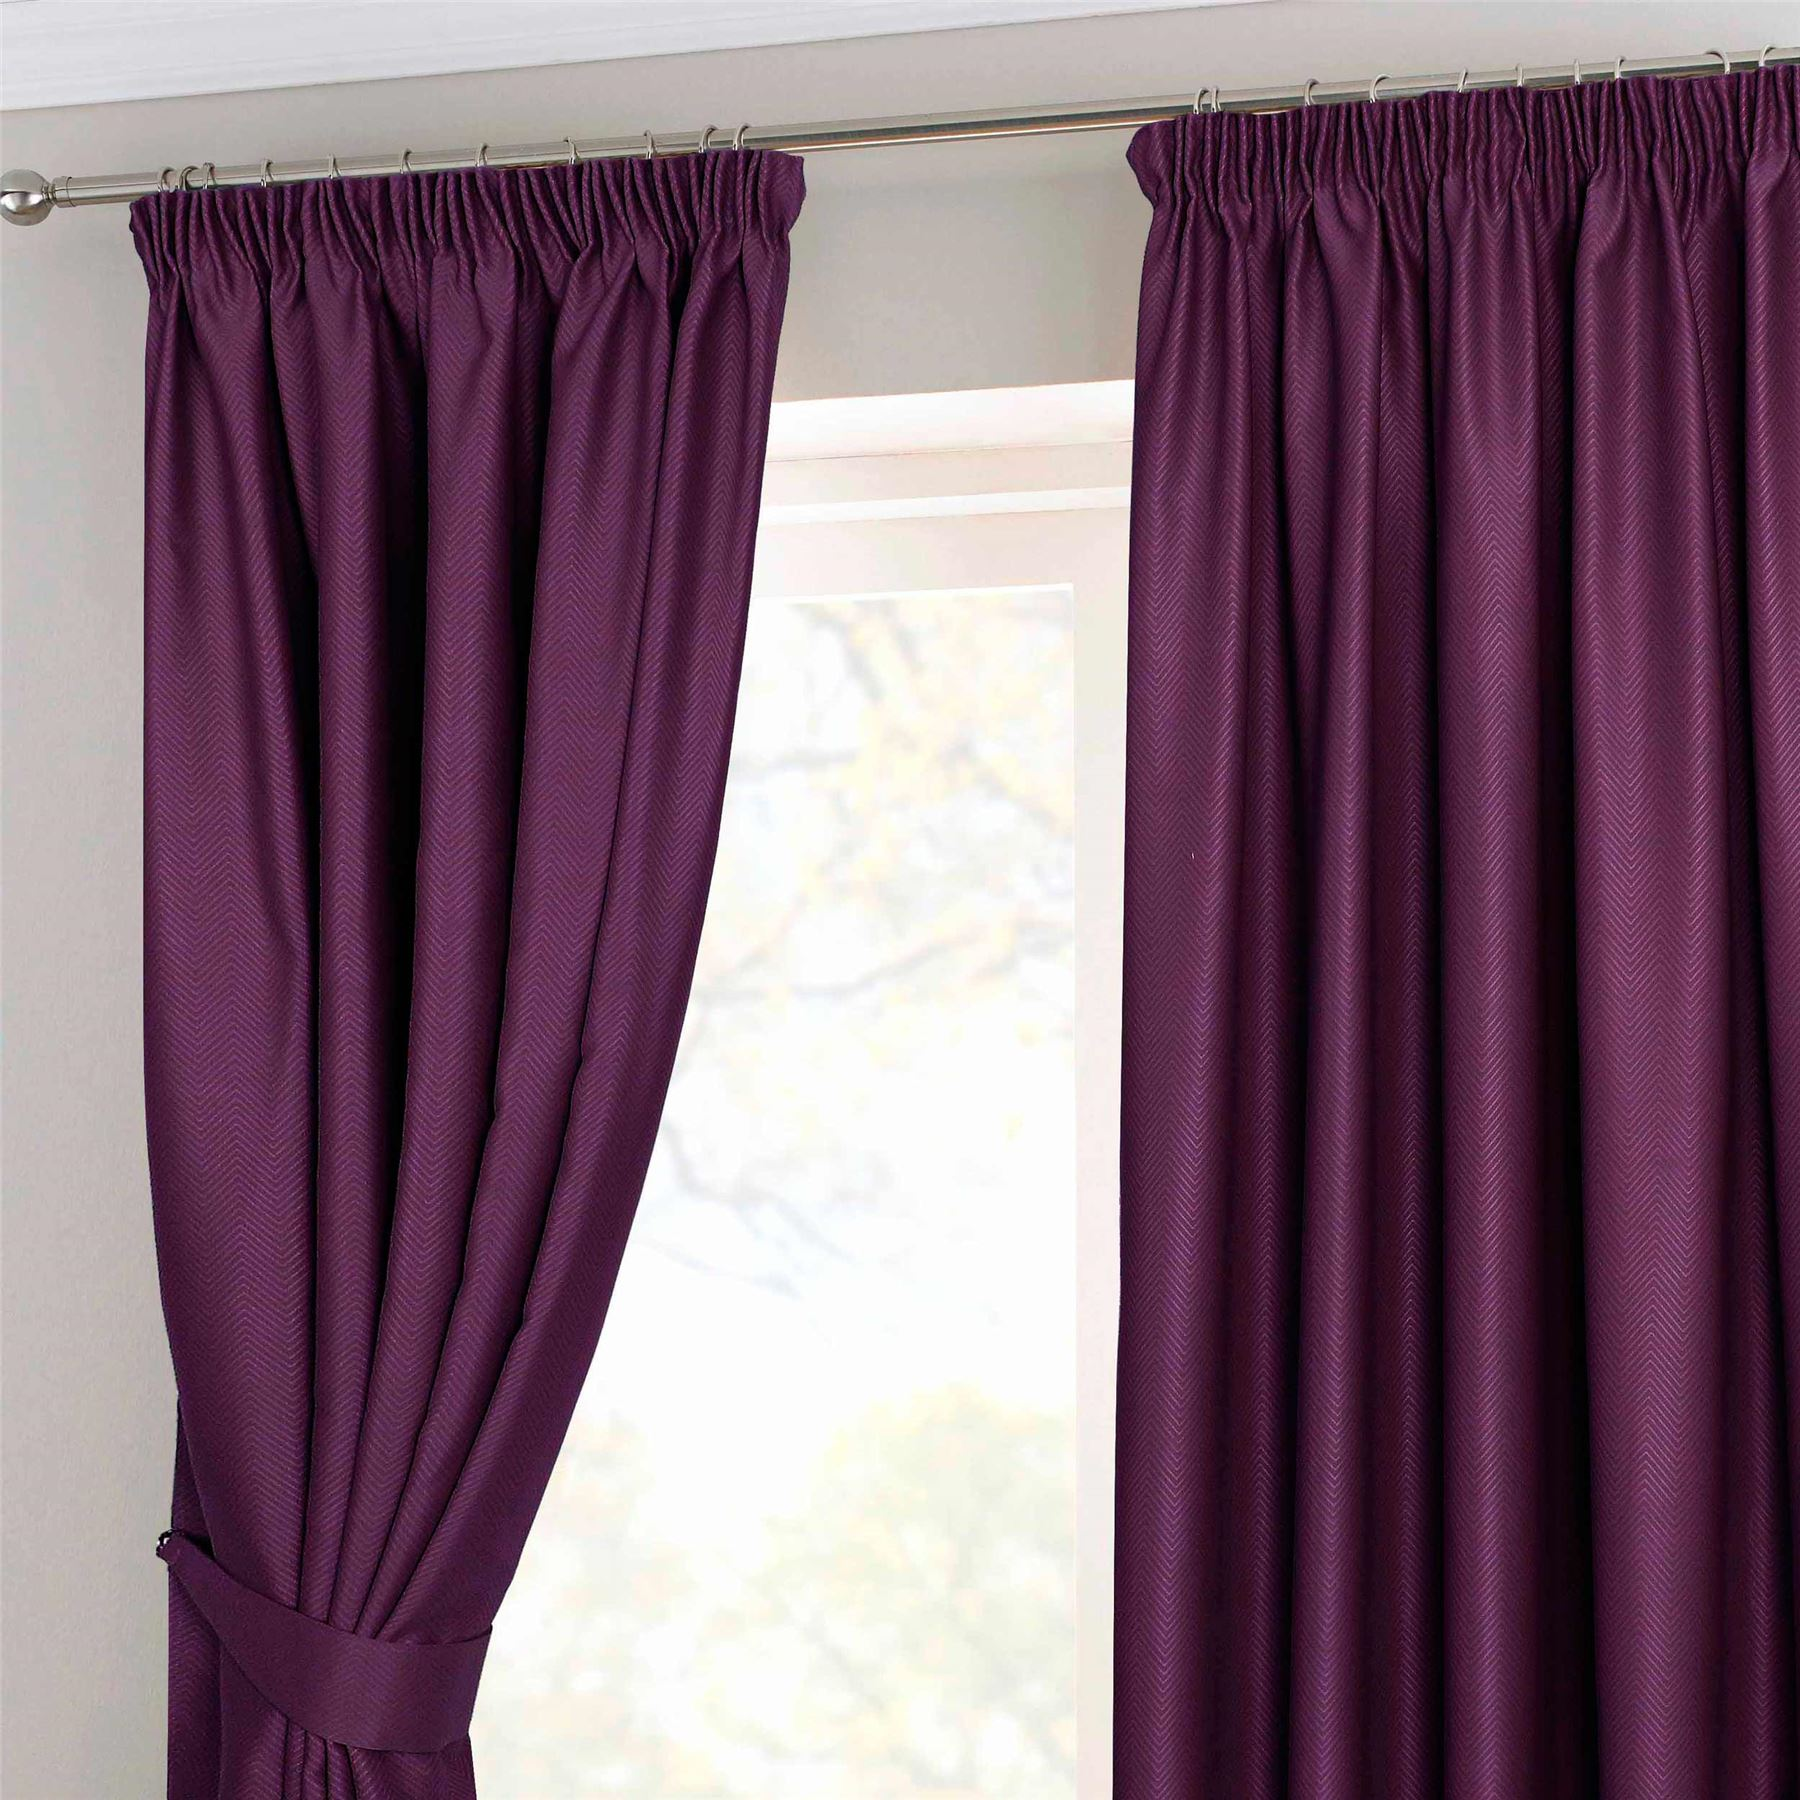 with uk for floral ready merge light cheap curtains made curtain in bedroom printing p purple